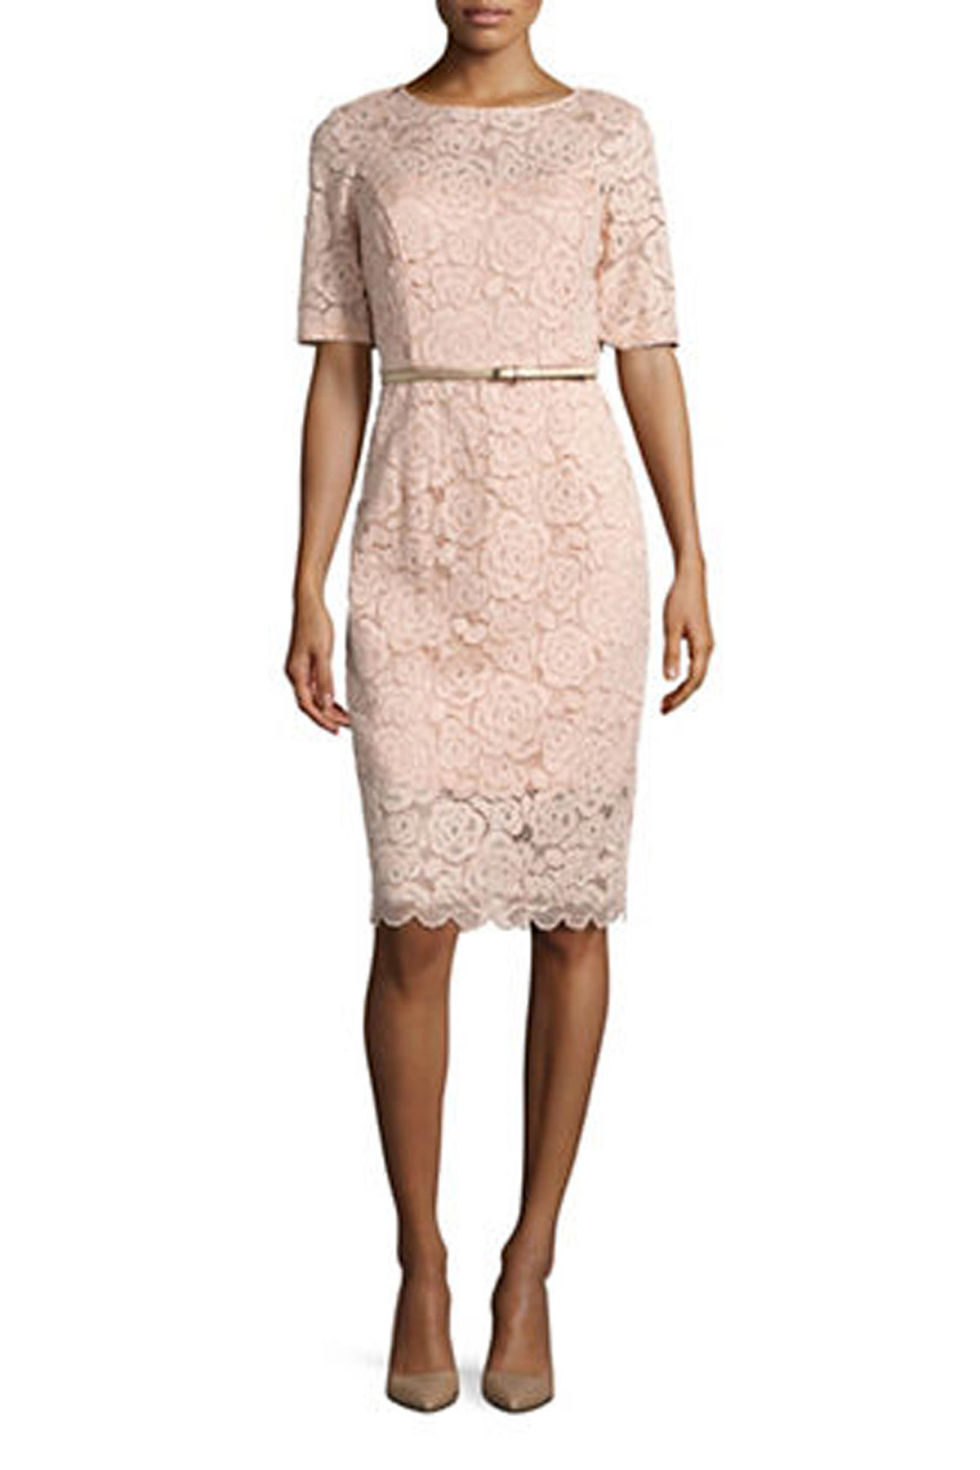 The dress gallery - 15 Pretty Valentine S Day Dresses Under 50 Date Night Dresses For Women